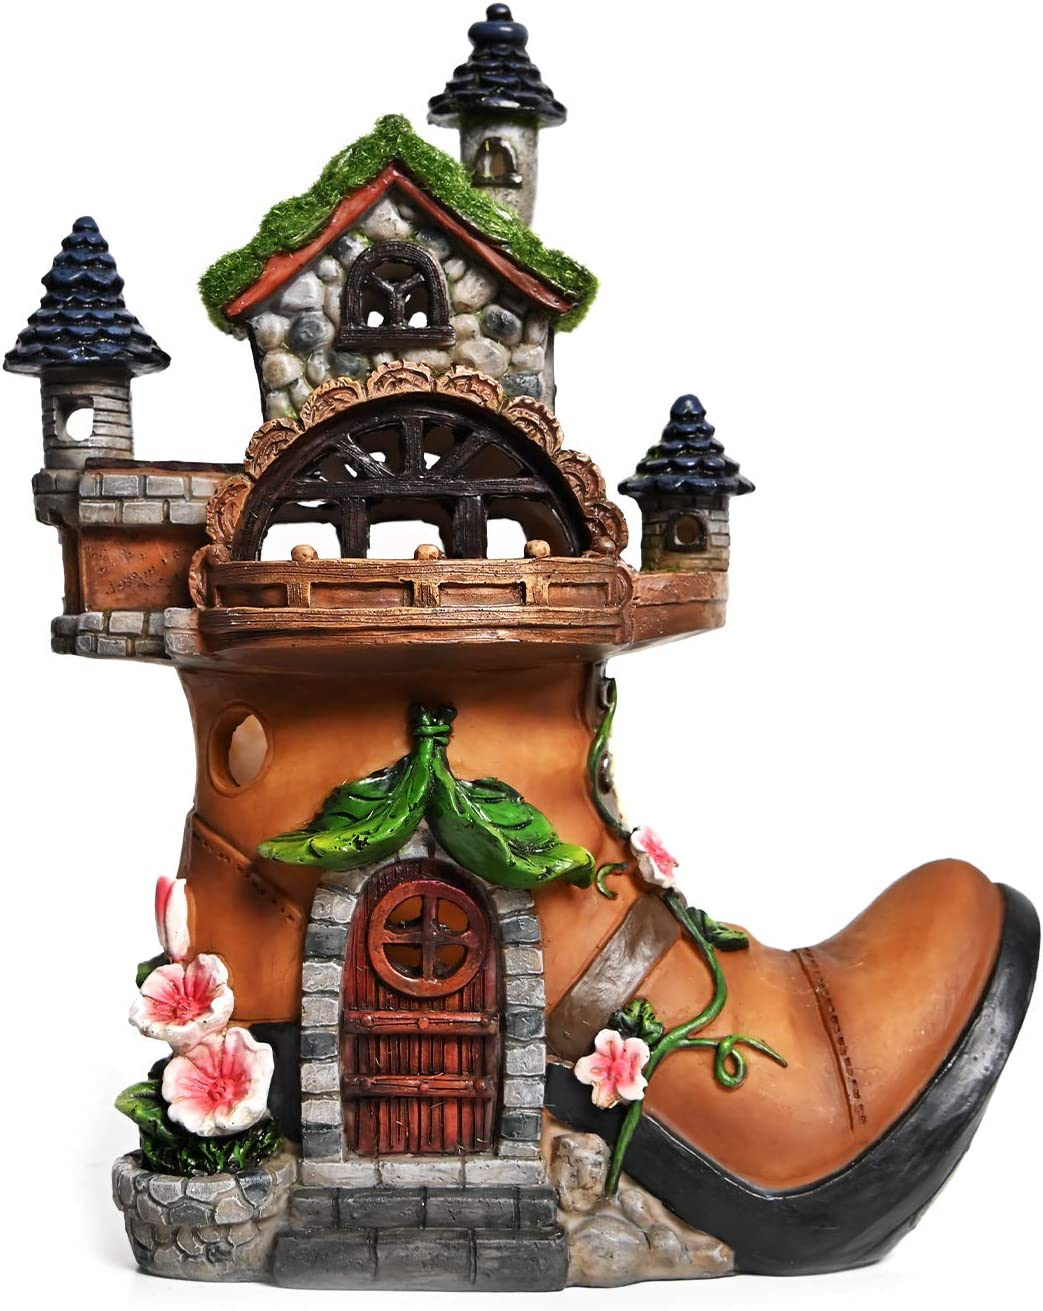 ASAWASA Flocked Boot House Solar Garden Statues and Sculptures Outdoor Decor,Garden Figurines with Solar Powered Lights for Patio,Lawn,Yard Art Decoration,Housewarming Garden Gift,7.9x4.1x9.7 Inch